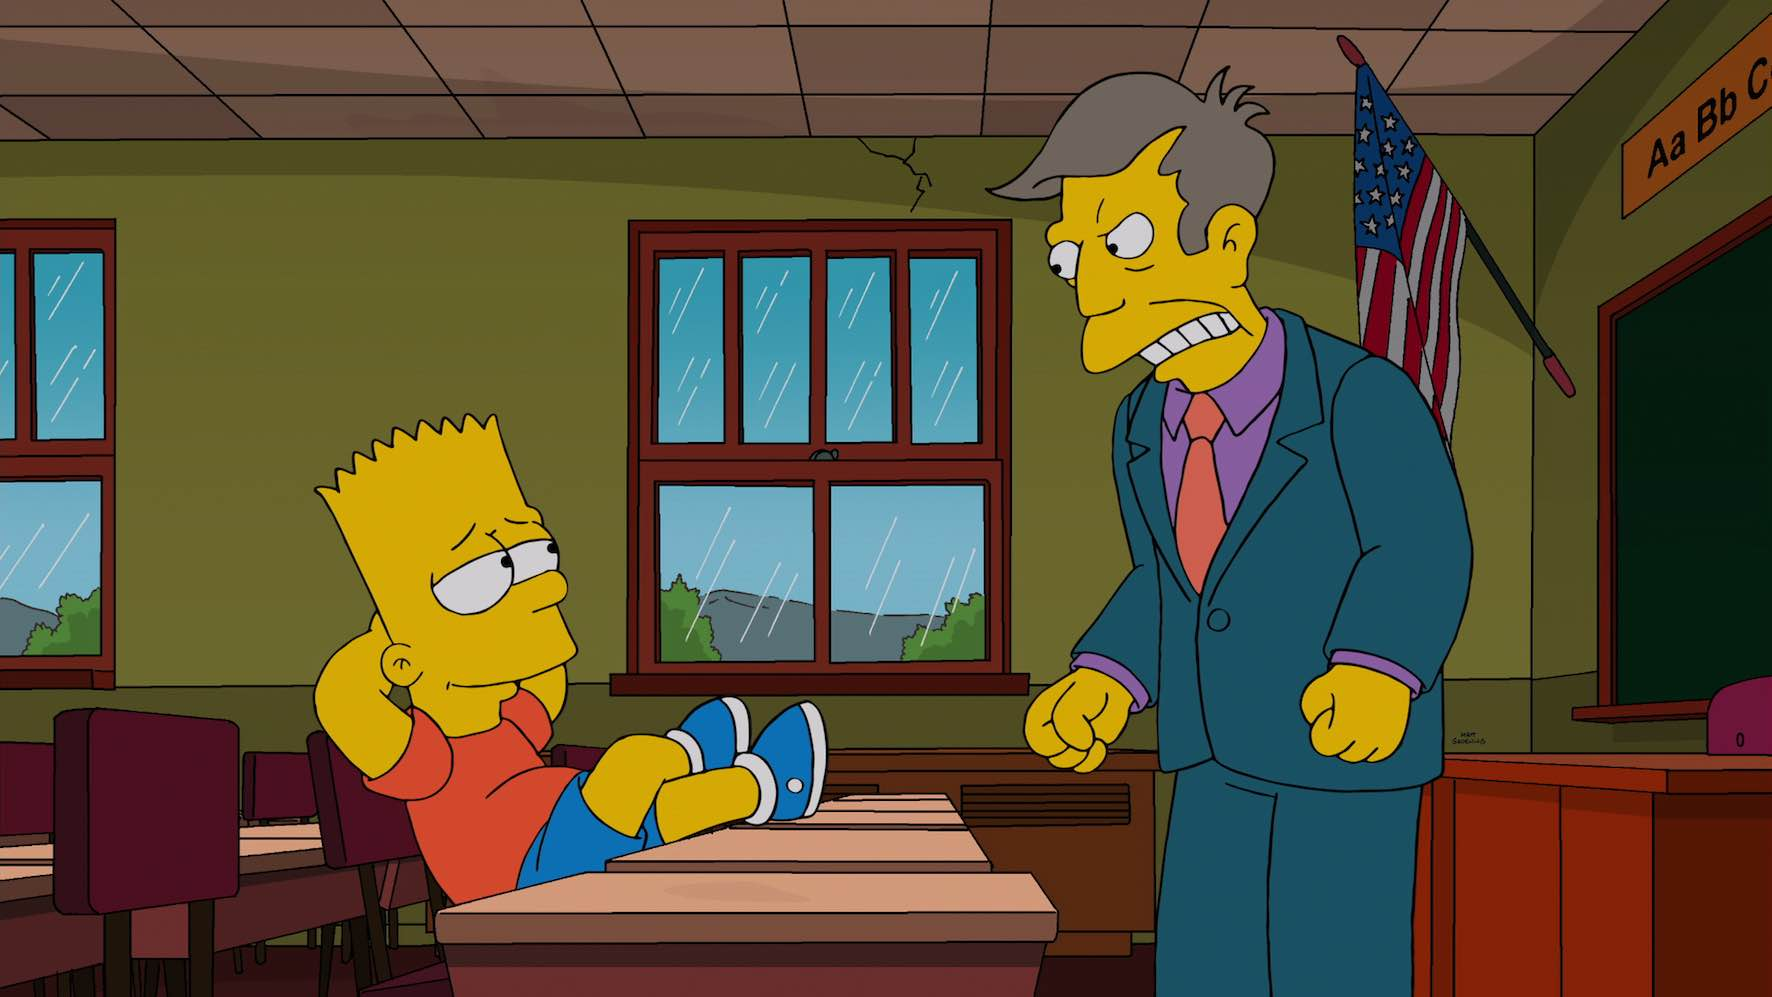 simpsons-bart_at_desk_01011120_hires1.jpg